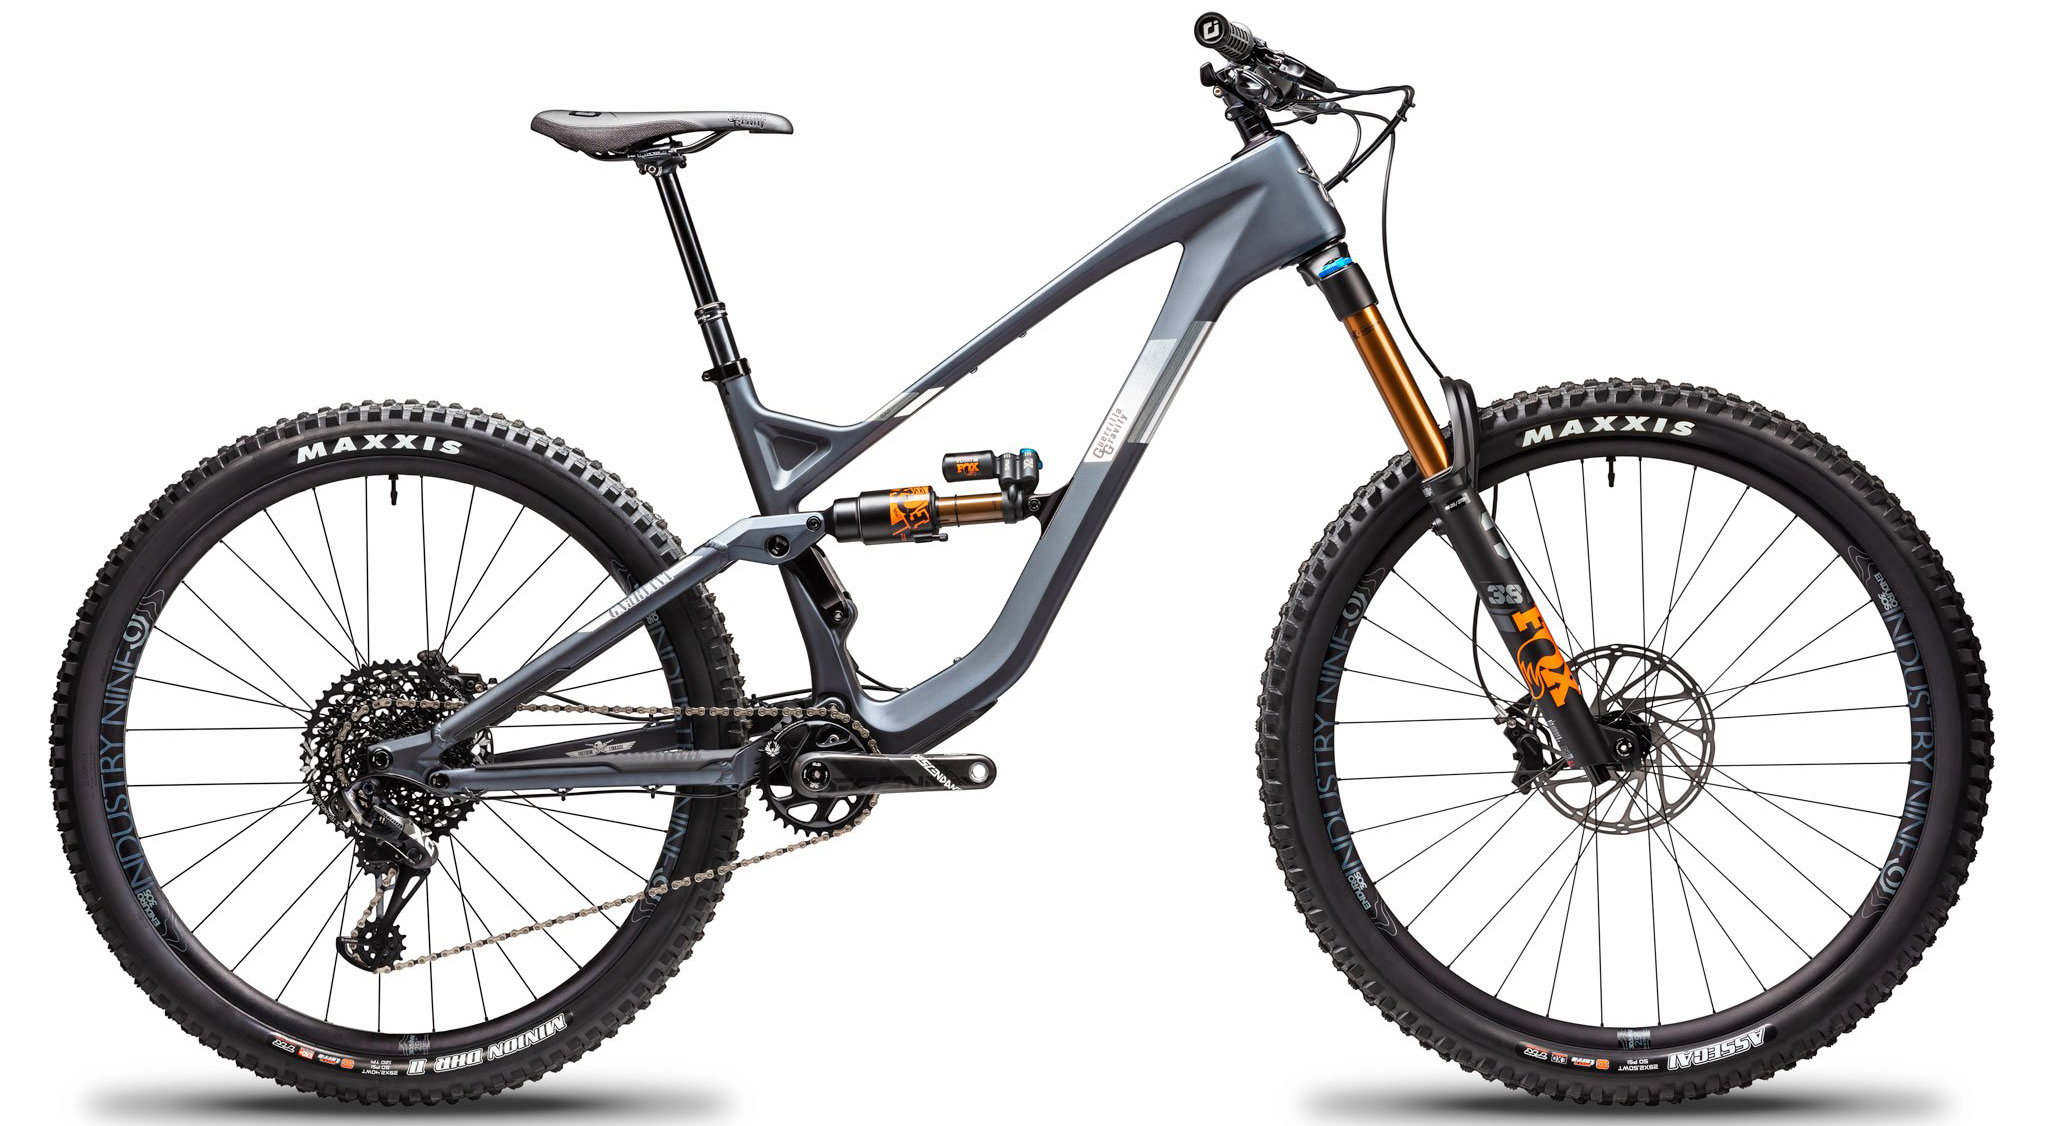 Guerilla Gravity Gnarvana mountain bike